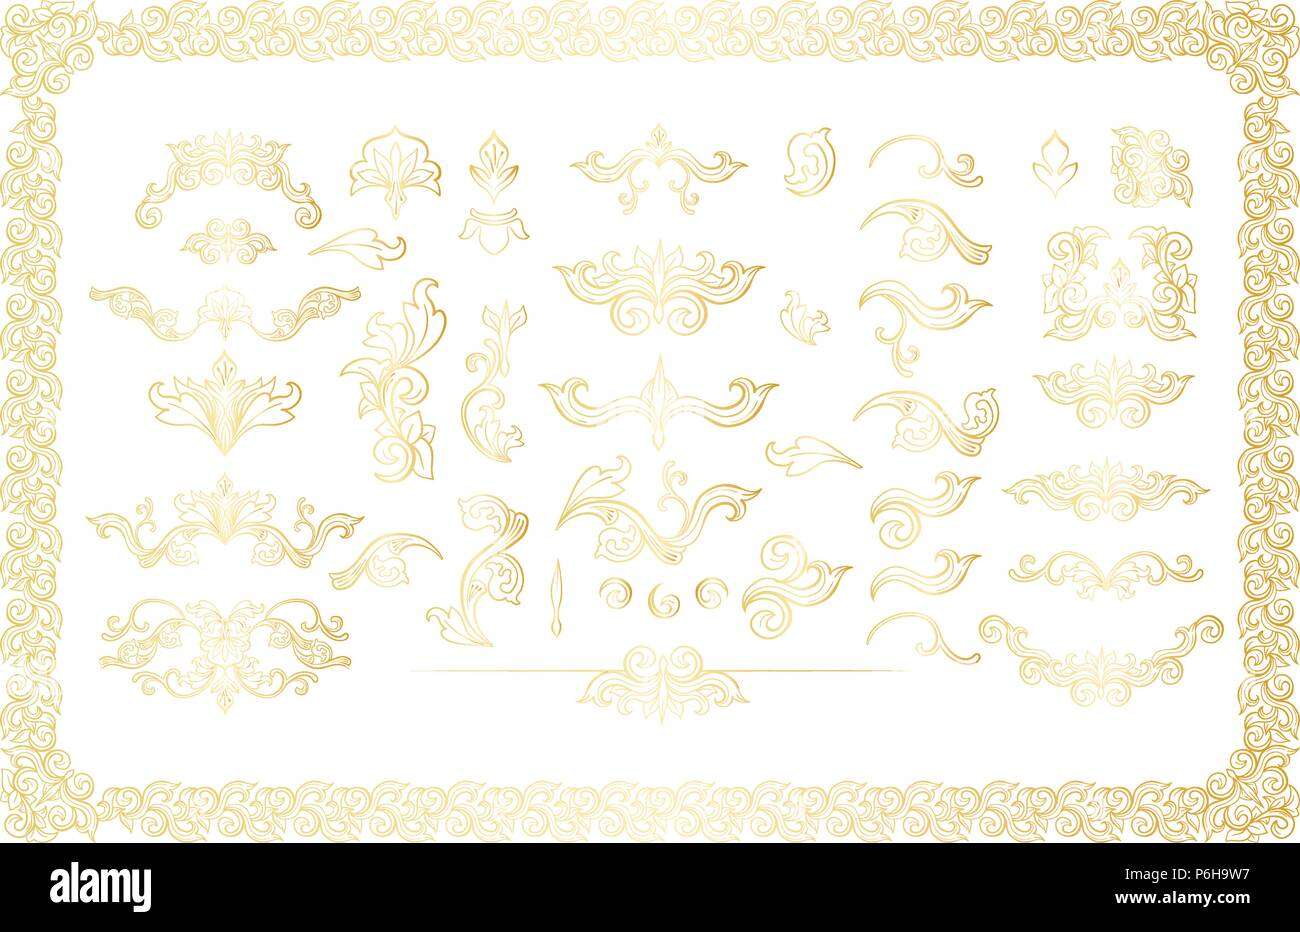 Gold Isolated Plants With Leaves Decorations Italian Flourish